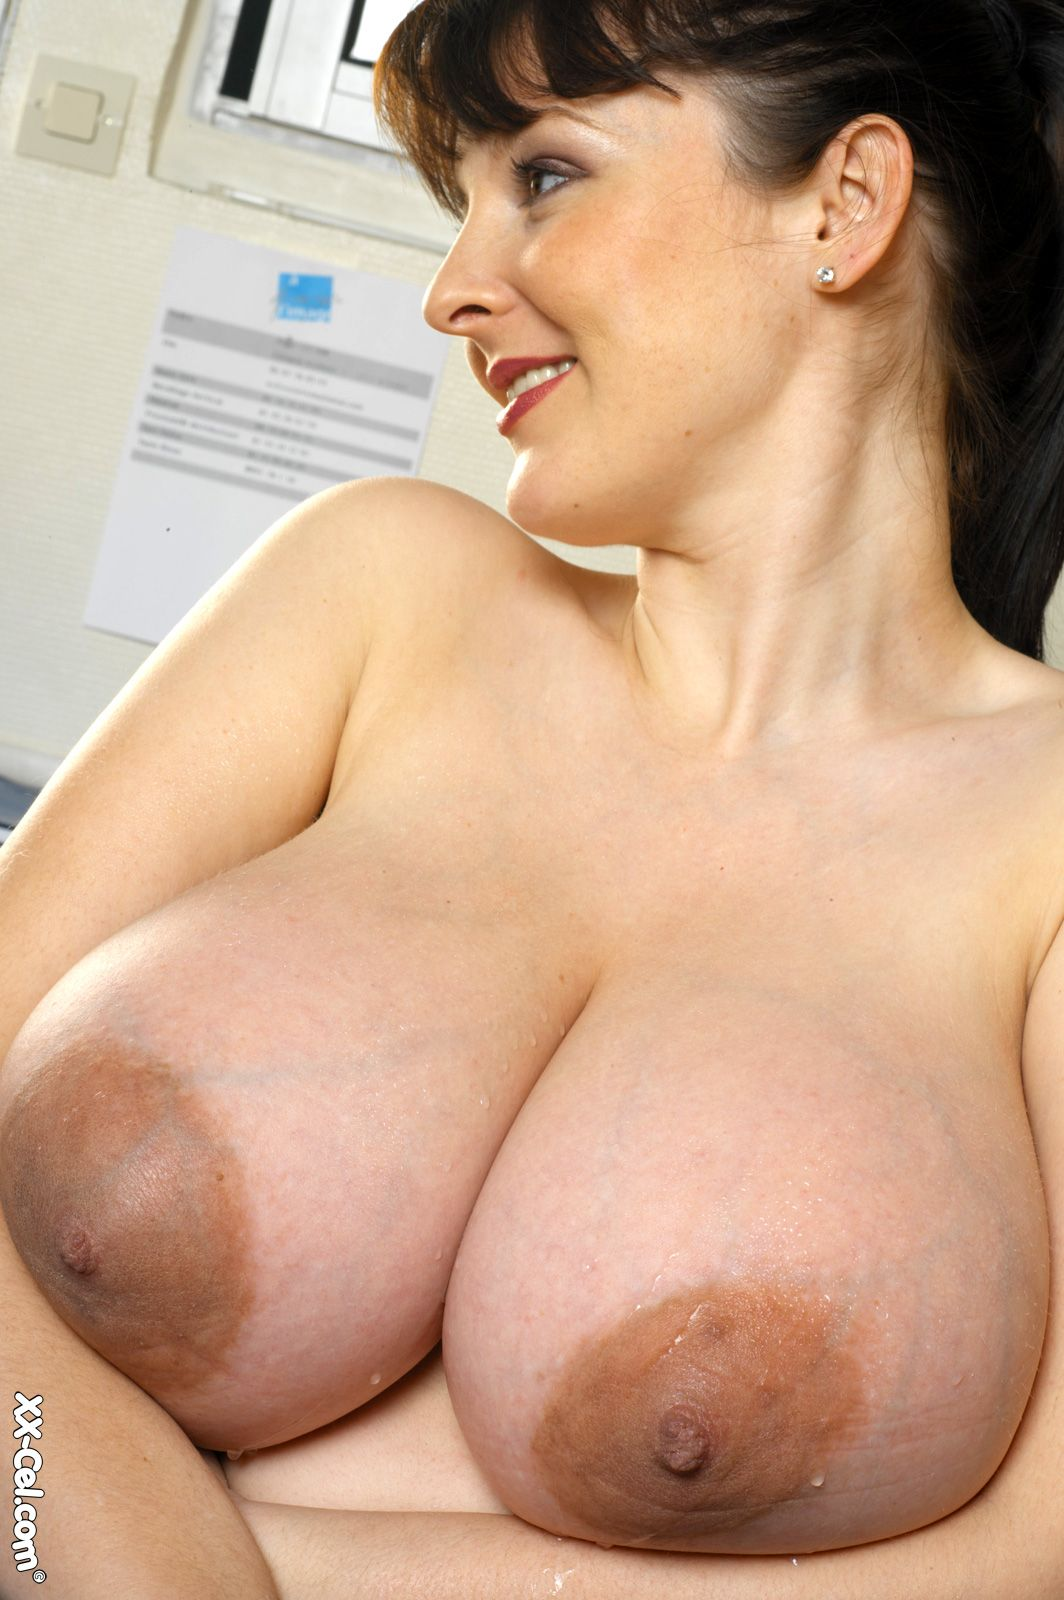 Nothing But Hot Girls With Big Natural Tits And Nipples